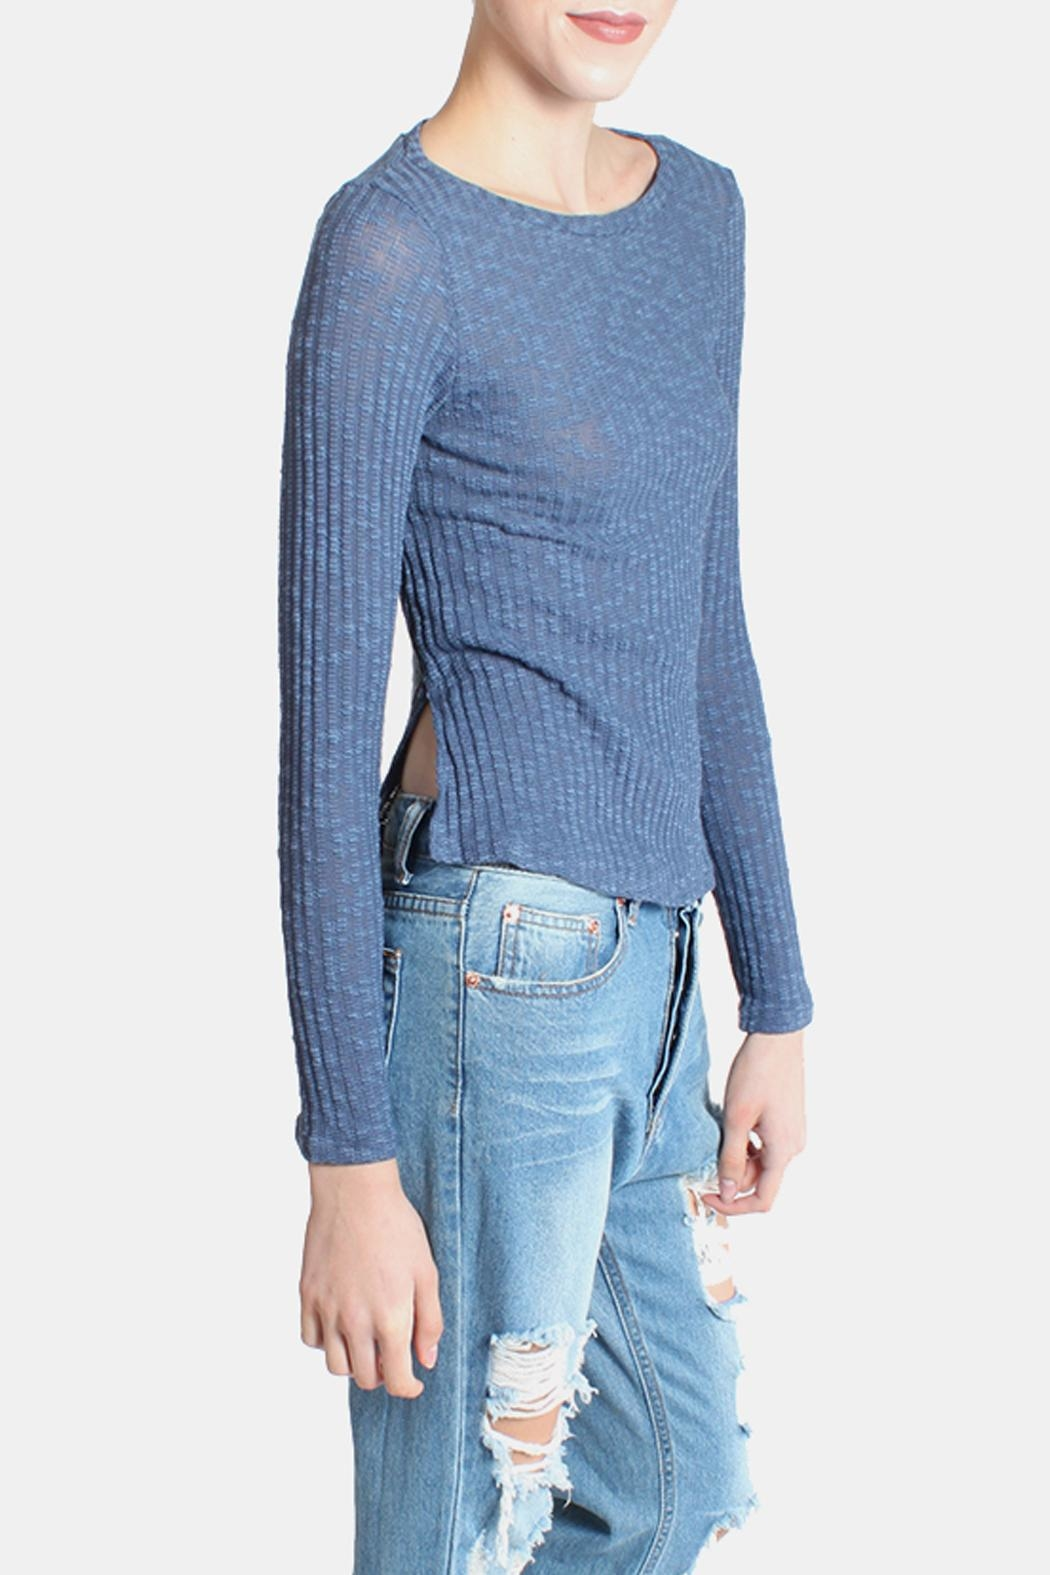 Honey Punch Blue Ribbed Sweater Top from Los Angeles by Goldie's ...